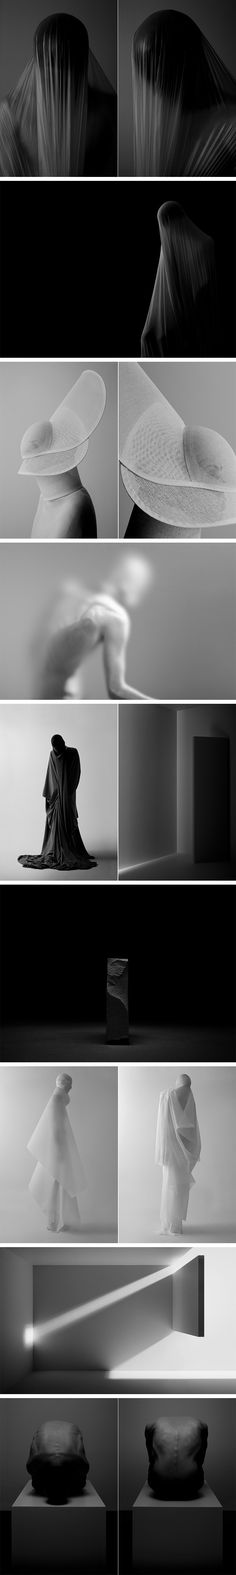 Amazing photography by Nicholas Alan Cope / art / portraits / abstract / amazing / http://cope1.com/